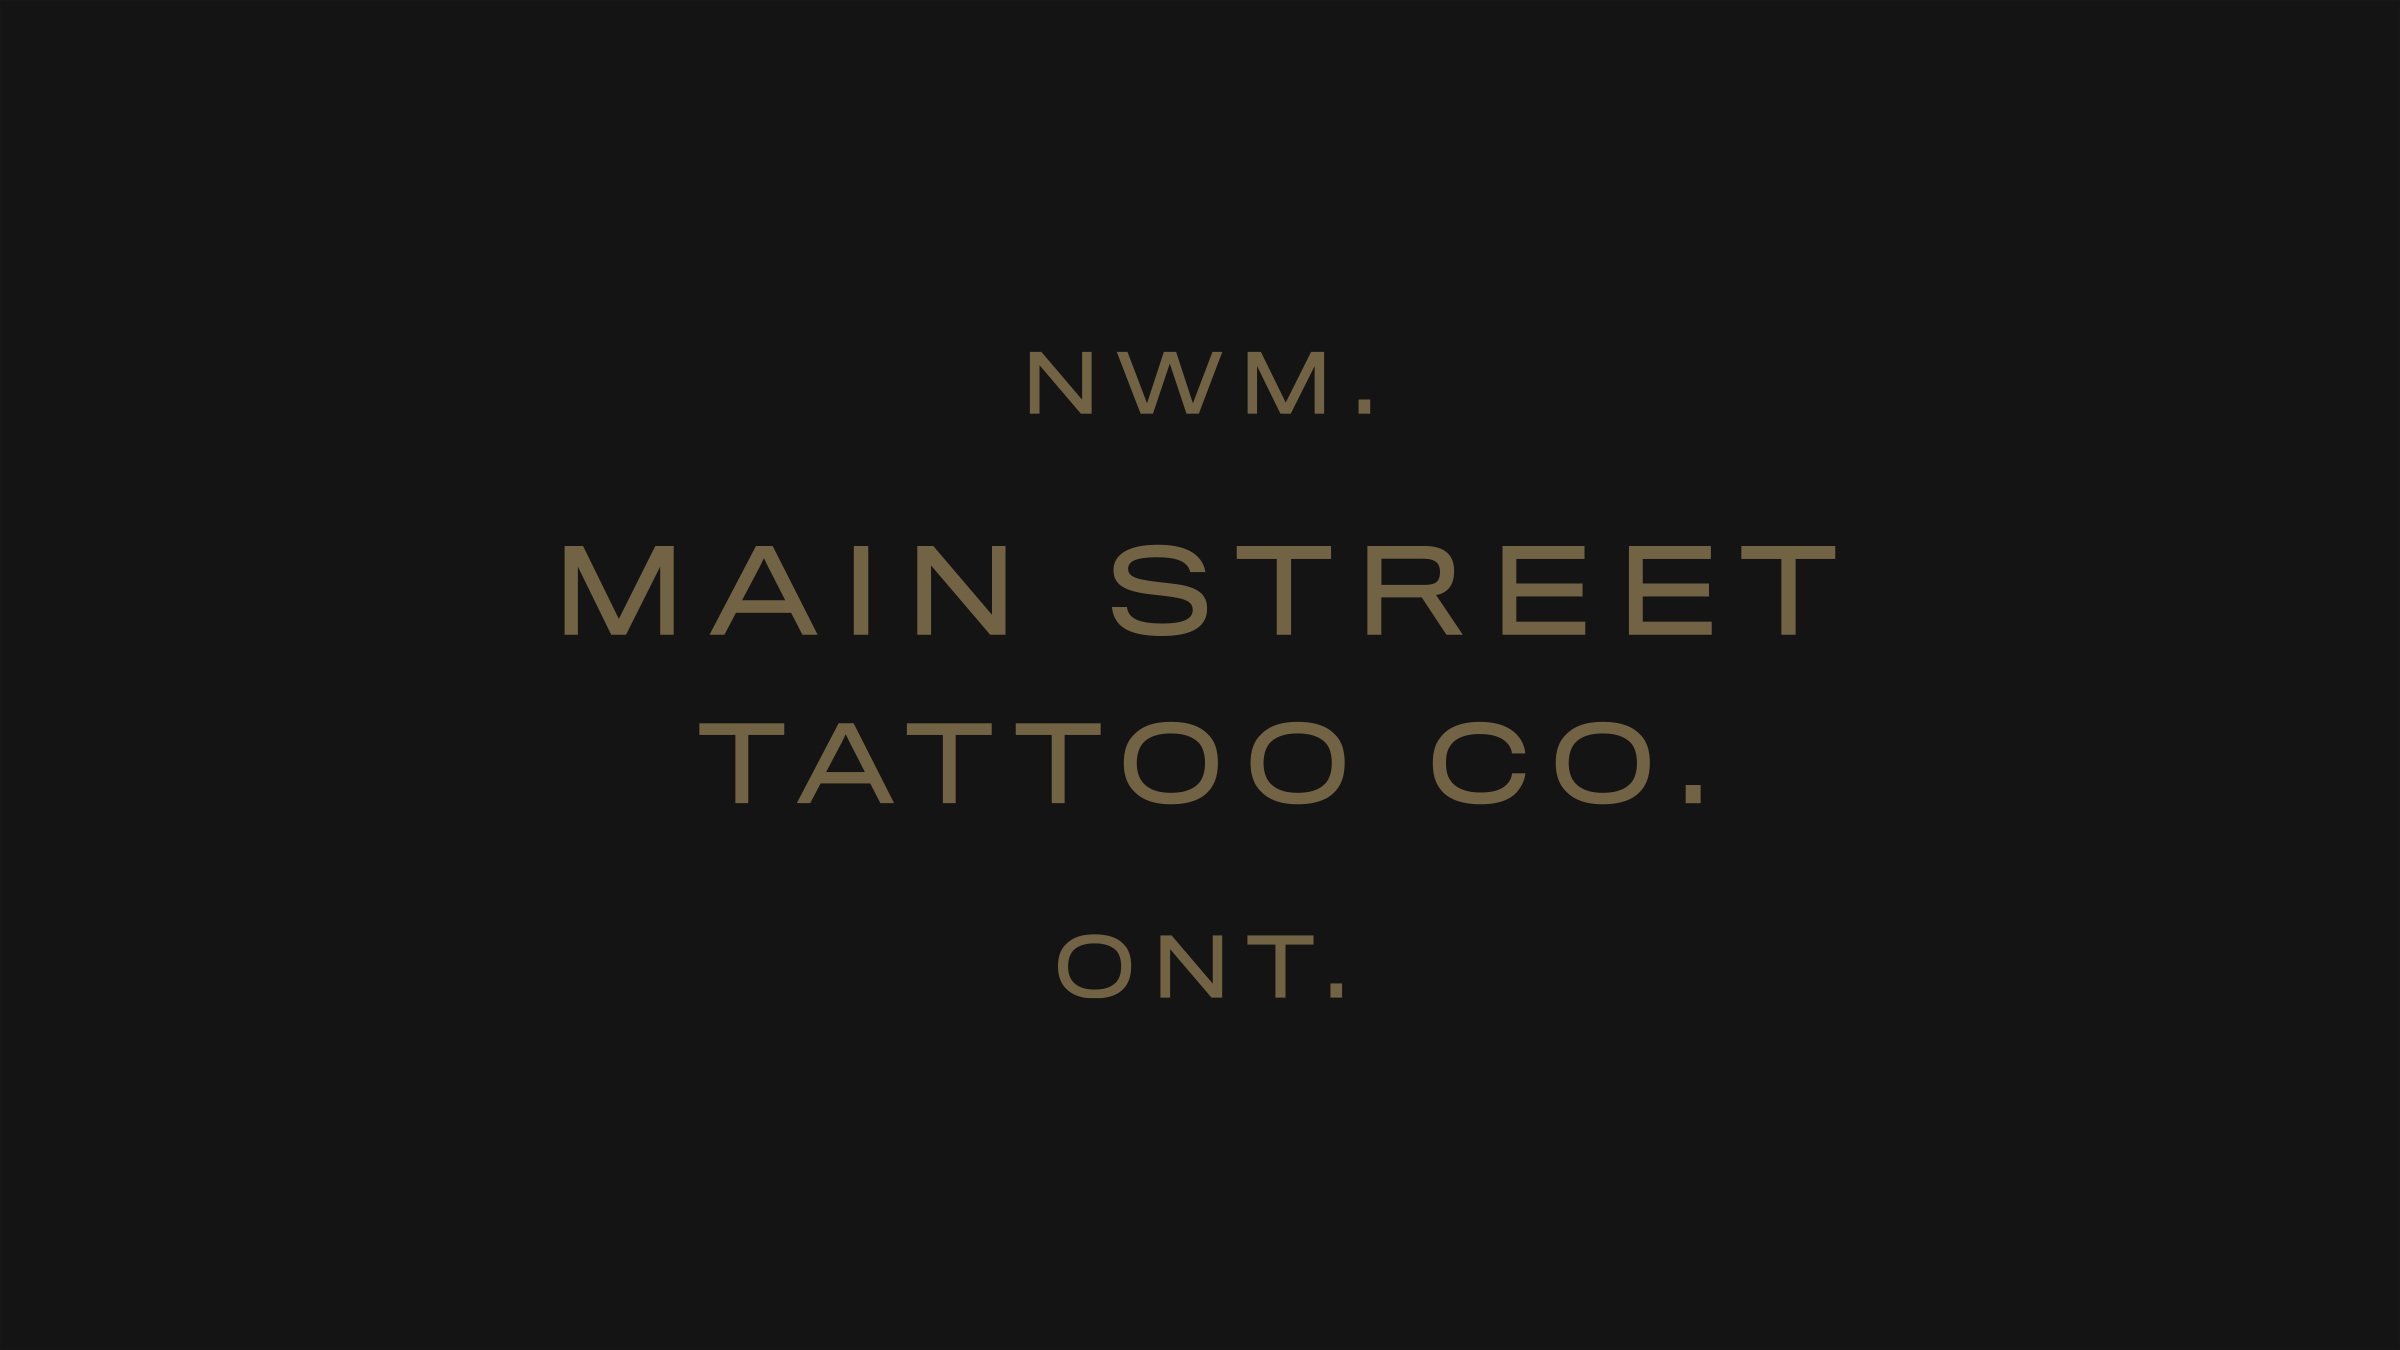 Main Street Tattoo Co. brand logo gold on black